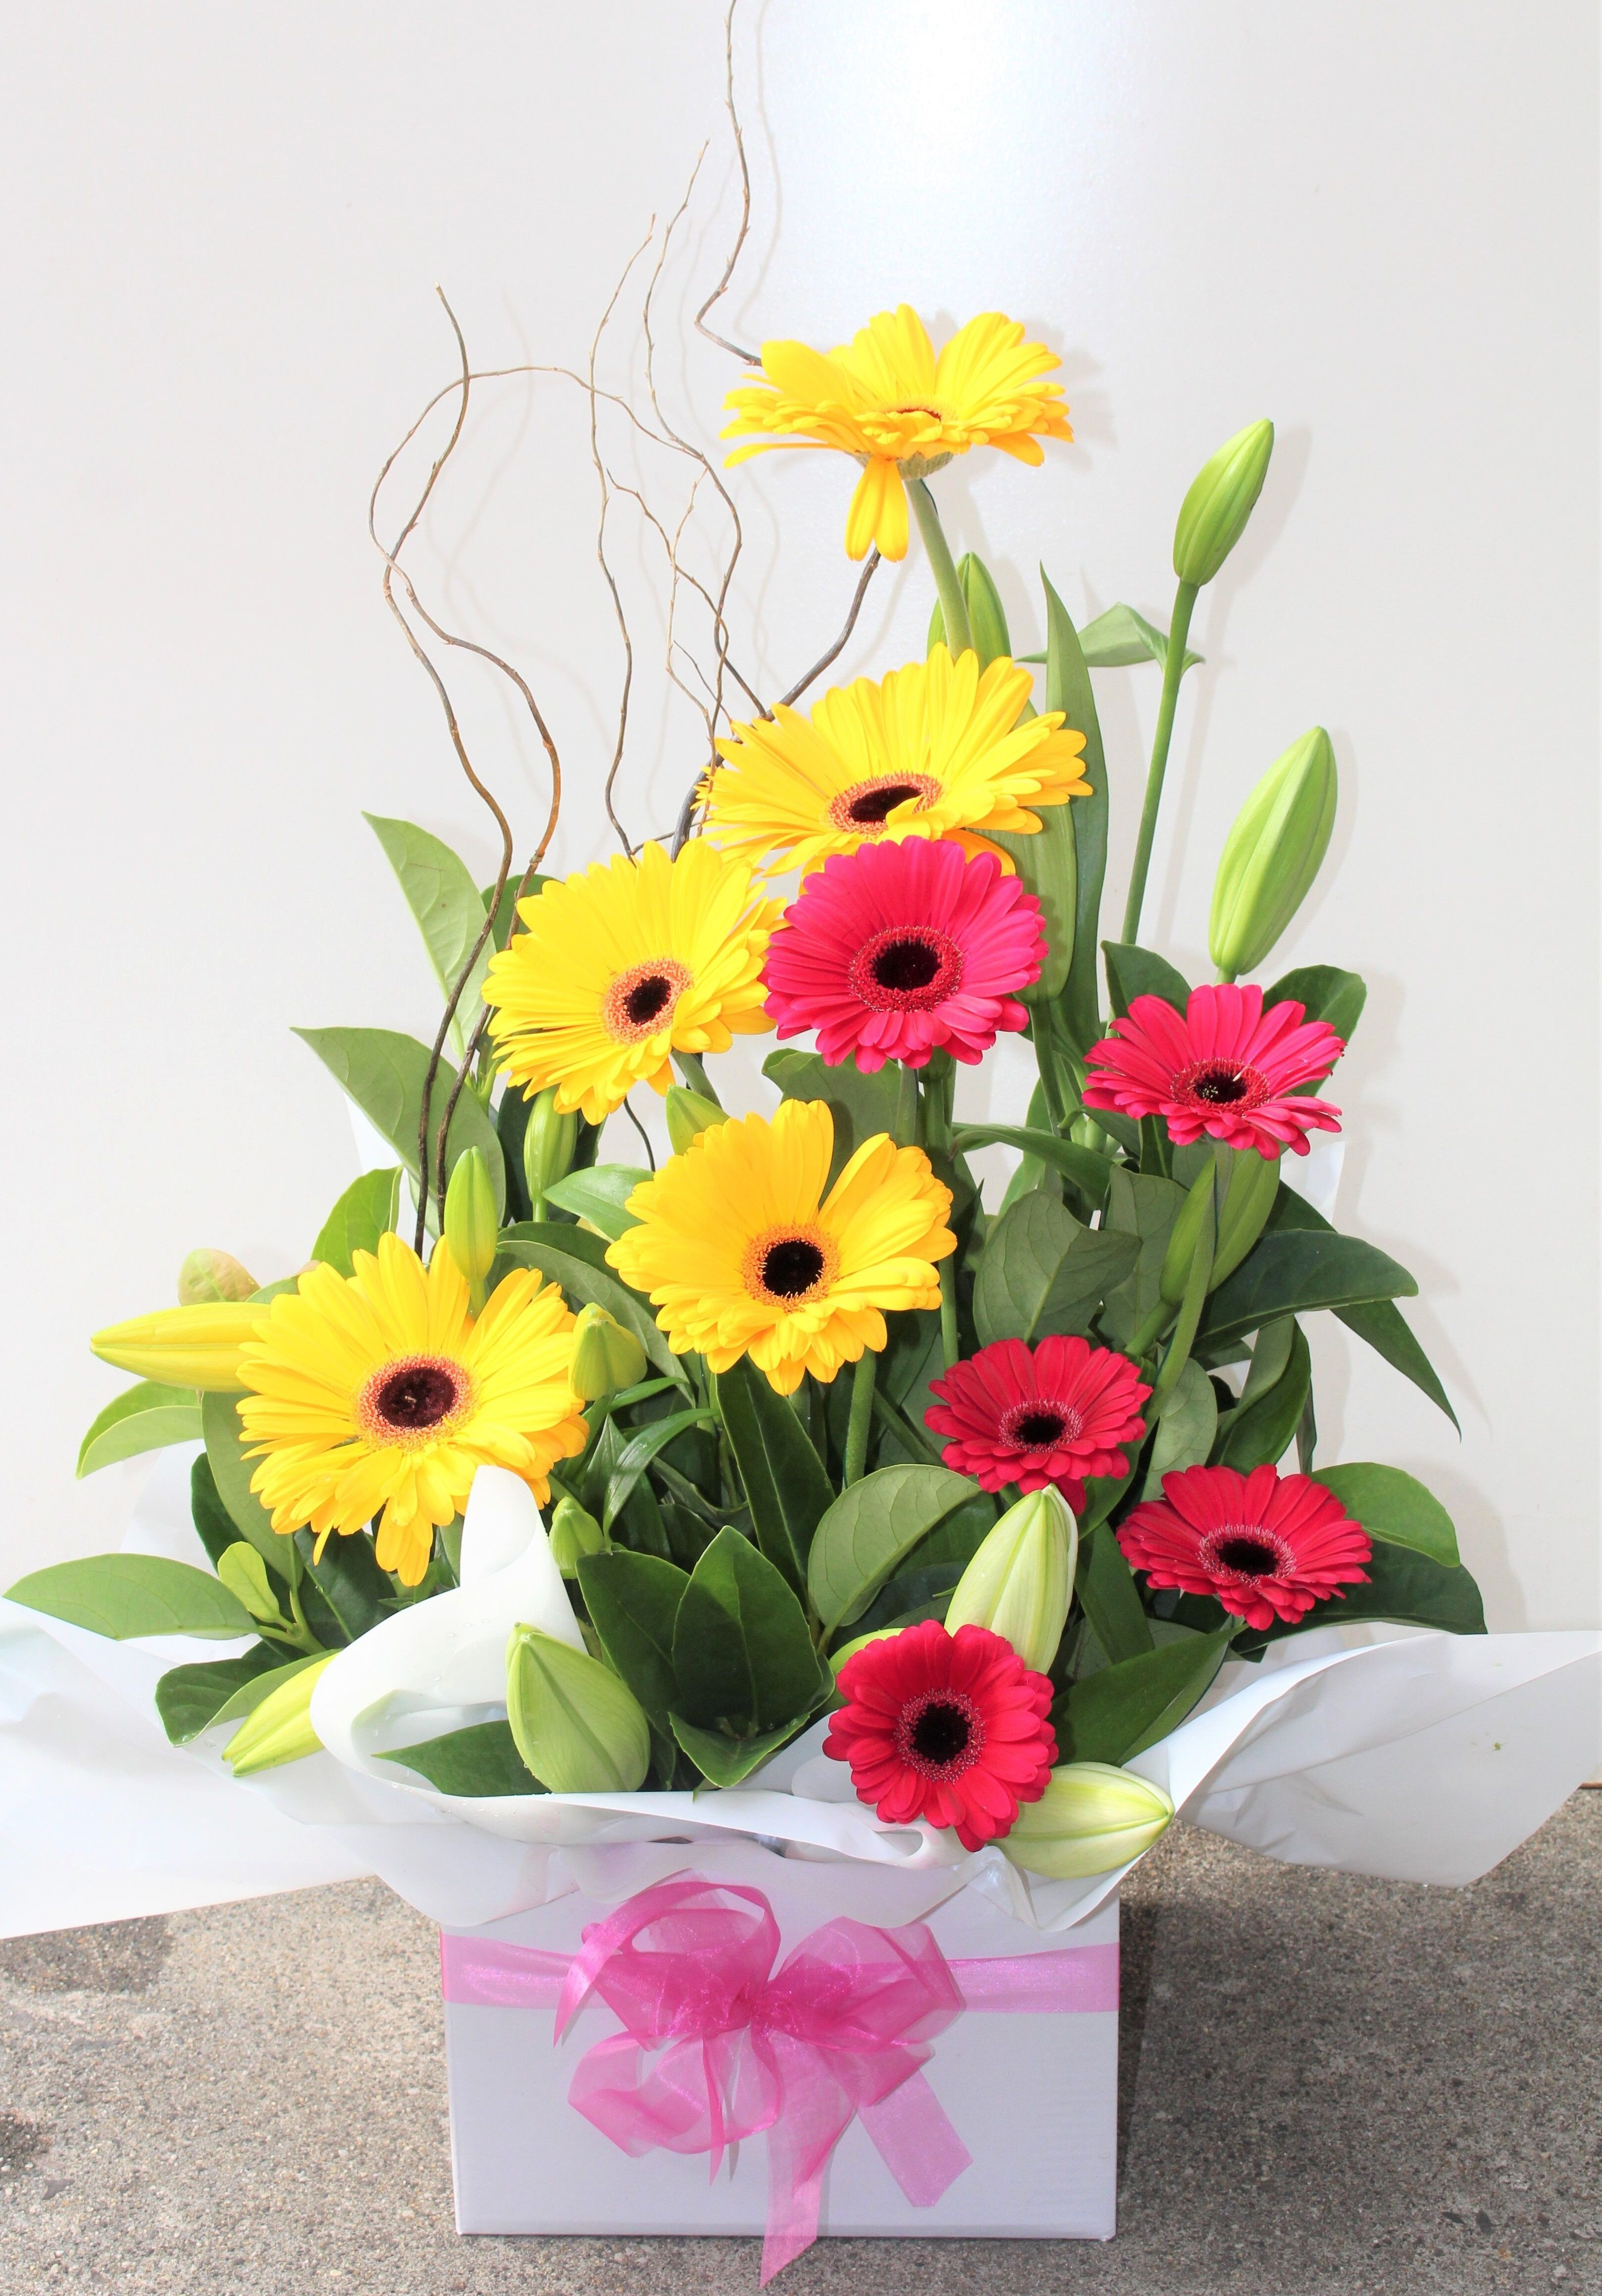 Mondayblues? Cheer up with stunning flowers. Hand picked